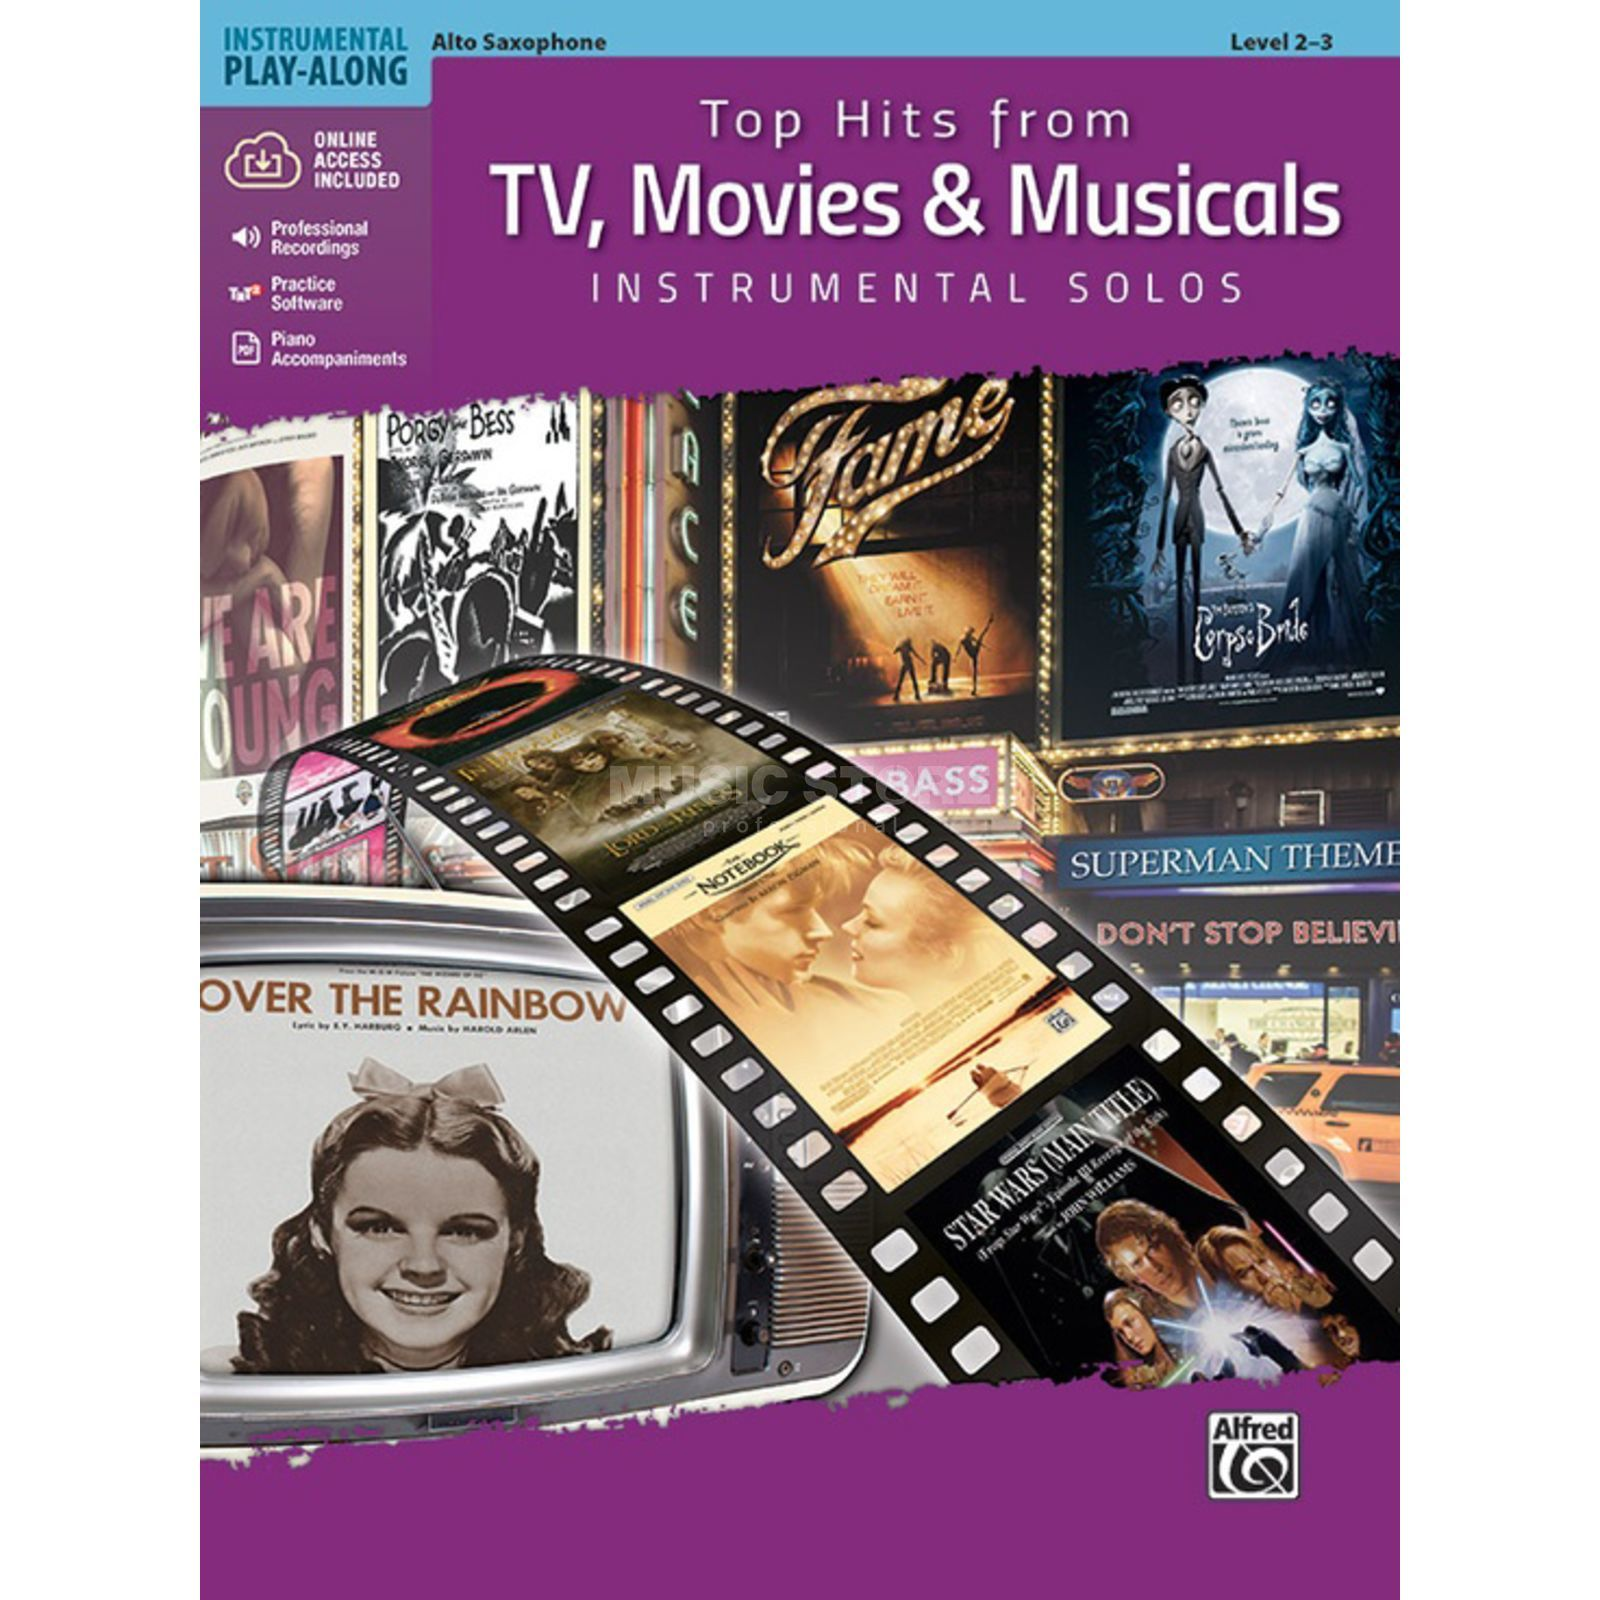 Alfred Music Top Hits from TV, Movies & Musicals - Alto Sax Image du produit